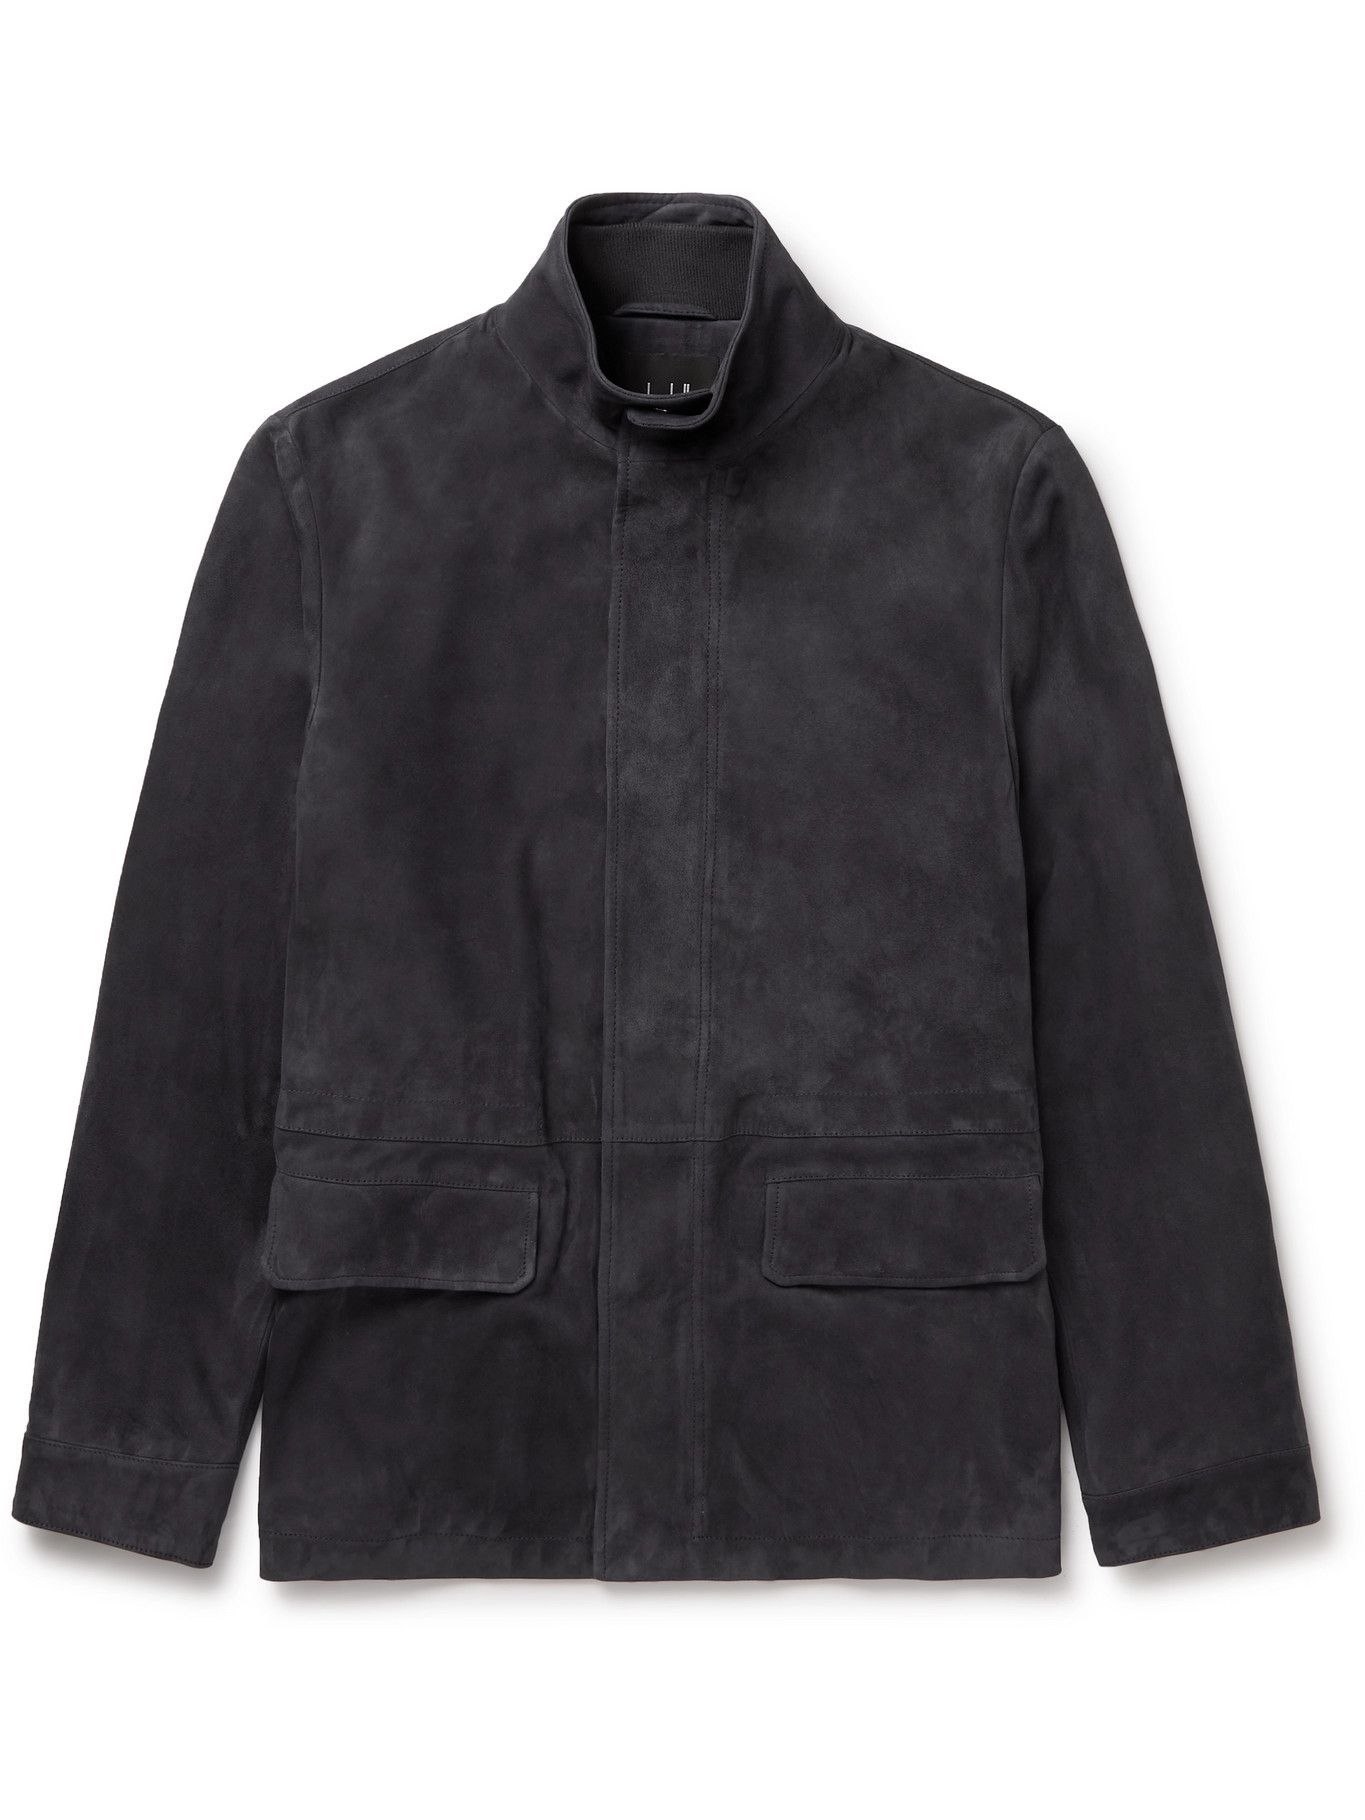 DUNHILL - Suede Field Jacket - Gray